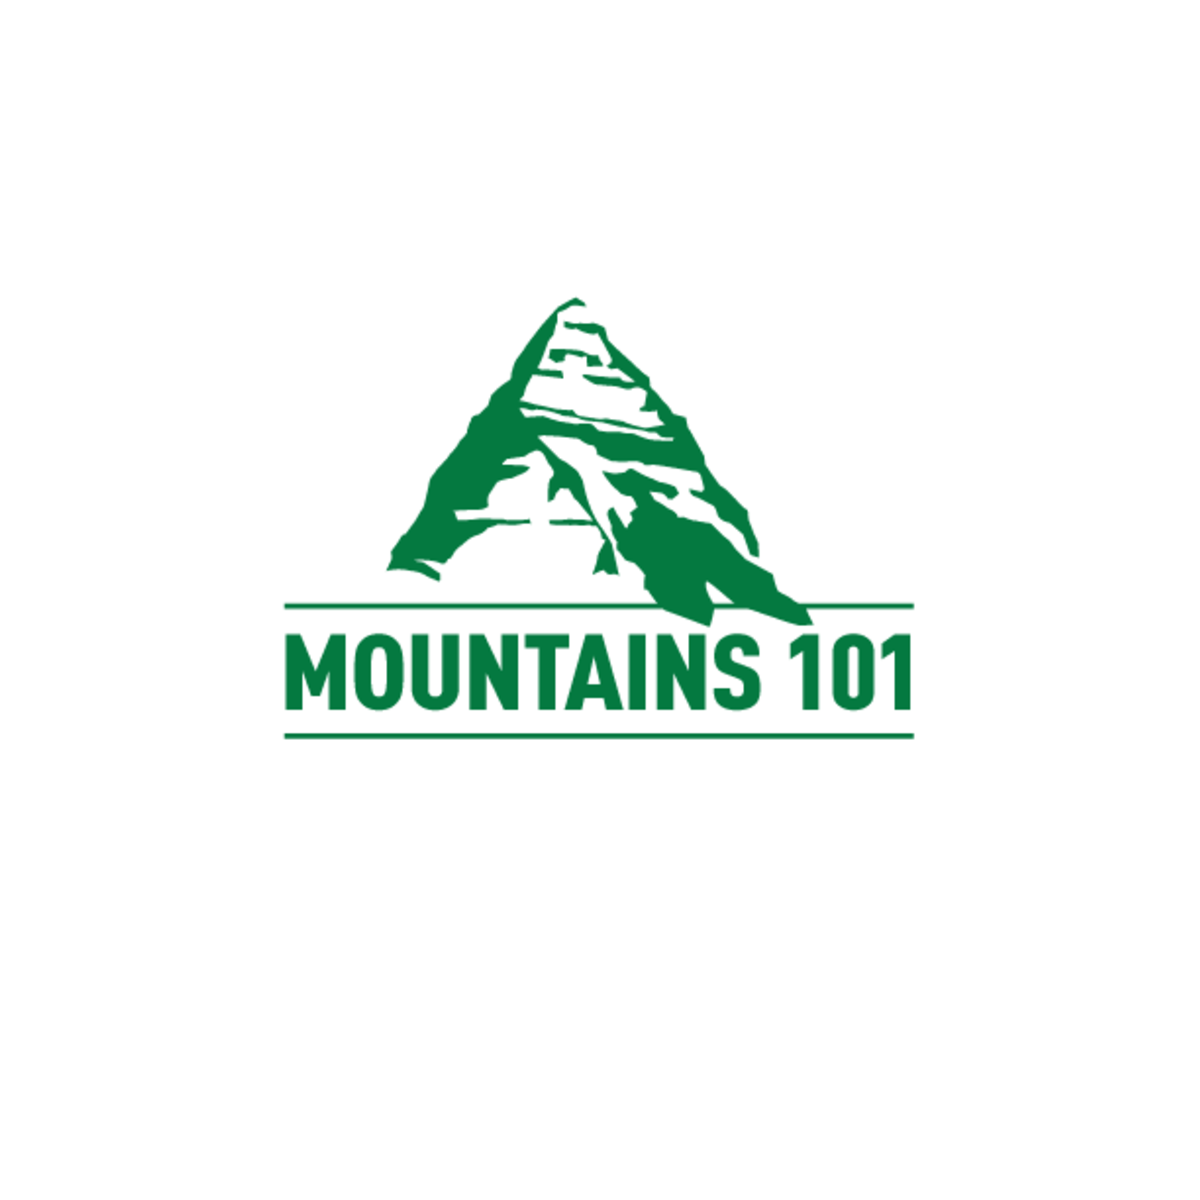 Mountains 101 course image